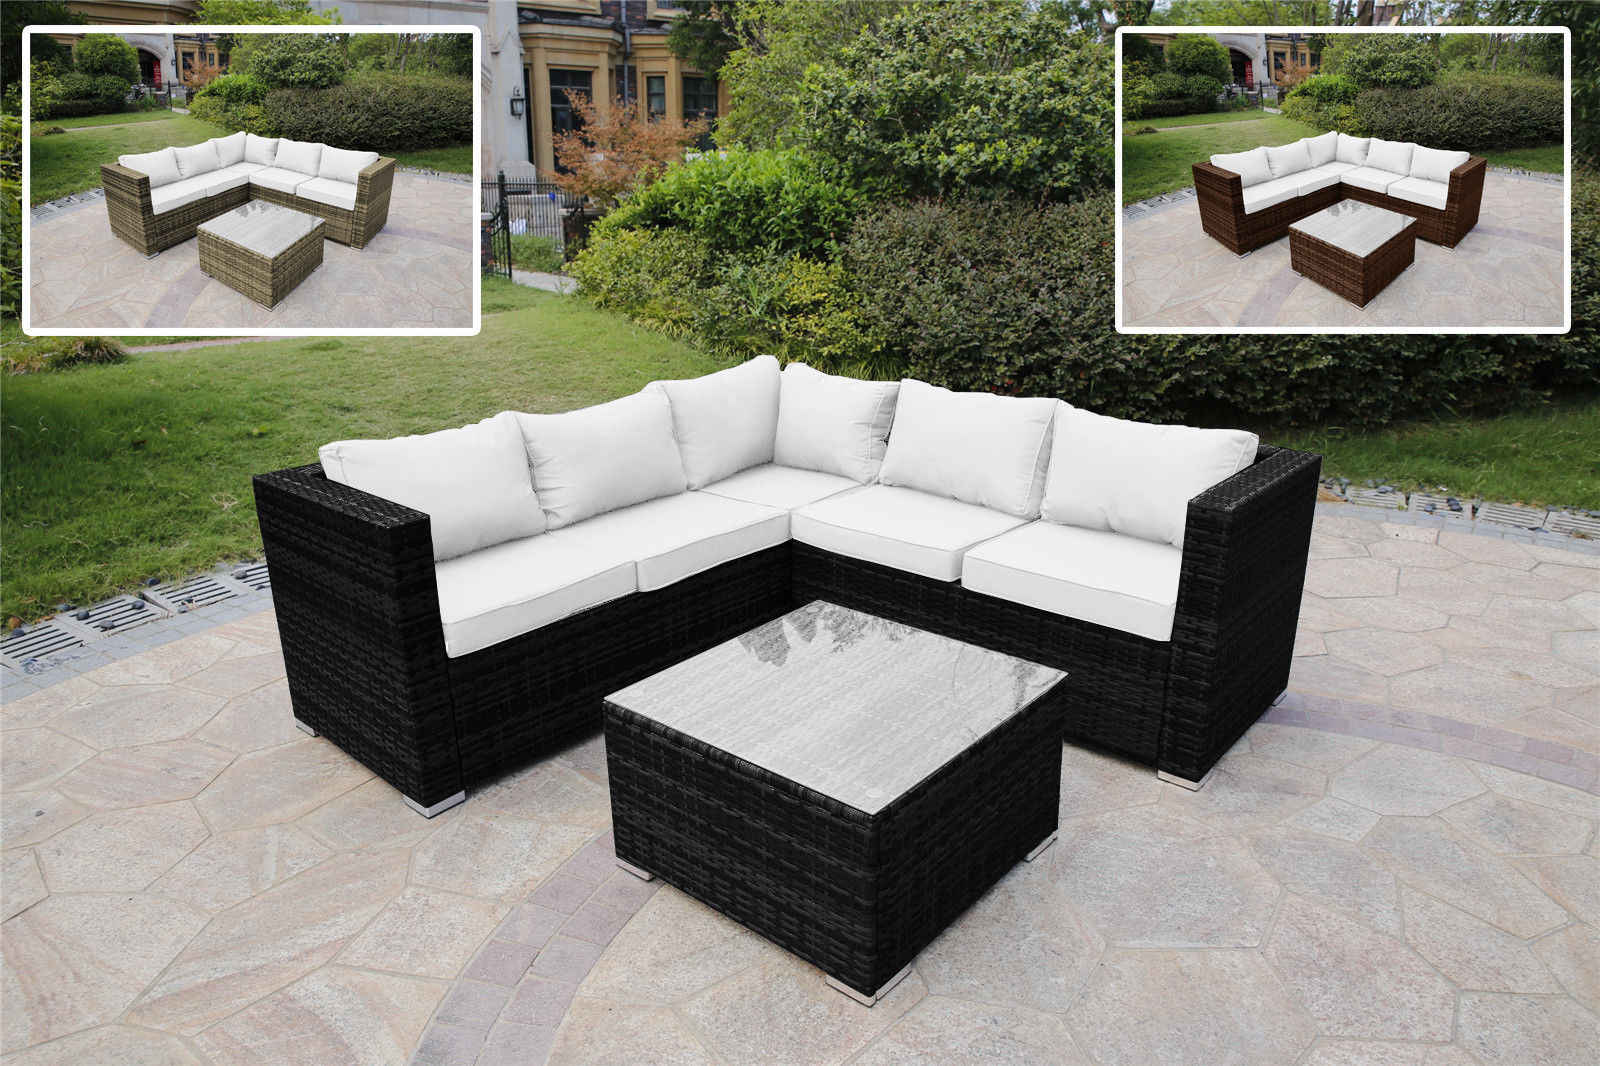 RATTAN GARDEN FURNITURE SET CORNER SOFA LOUNGER TABLE OUTDOOR PATIO CONSERVATORY